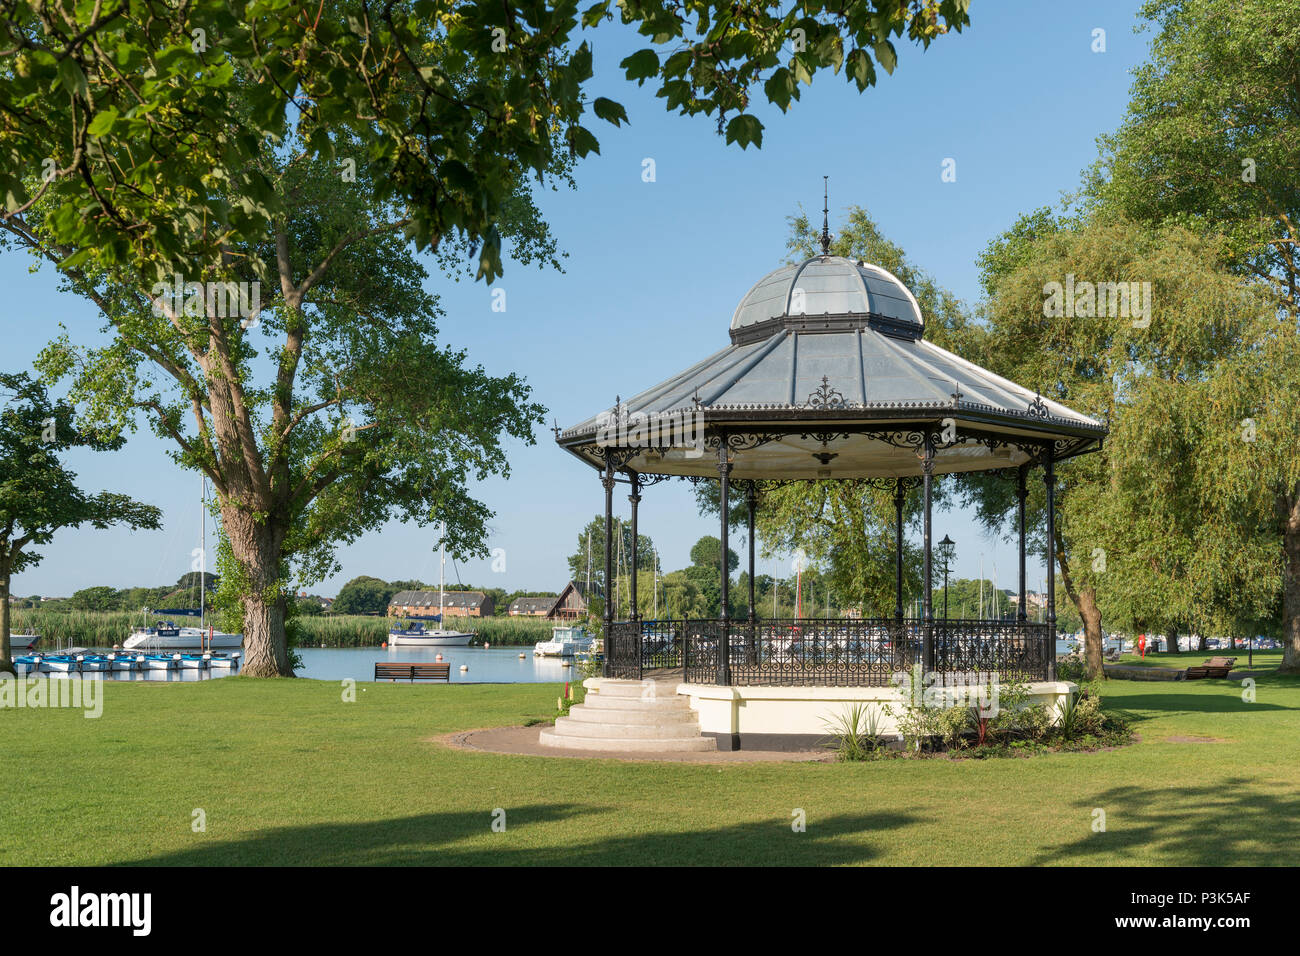 A bandstand in The Quomps area of Christchurch, Dorset, UK. - Stock Image